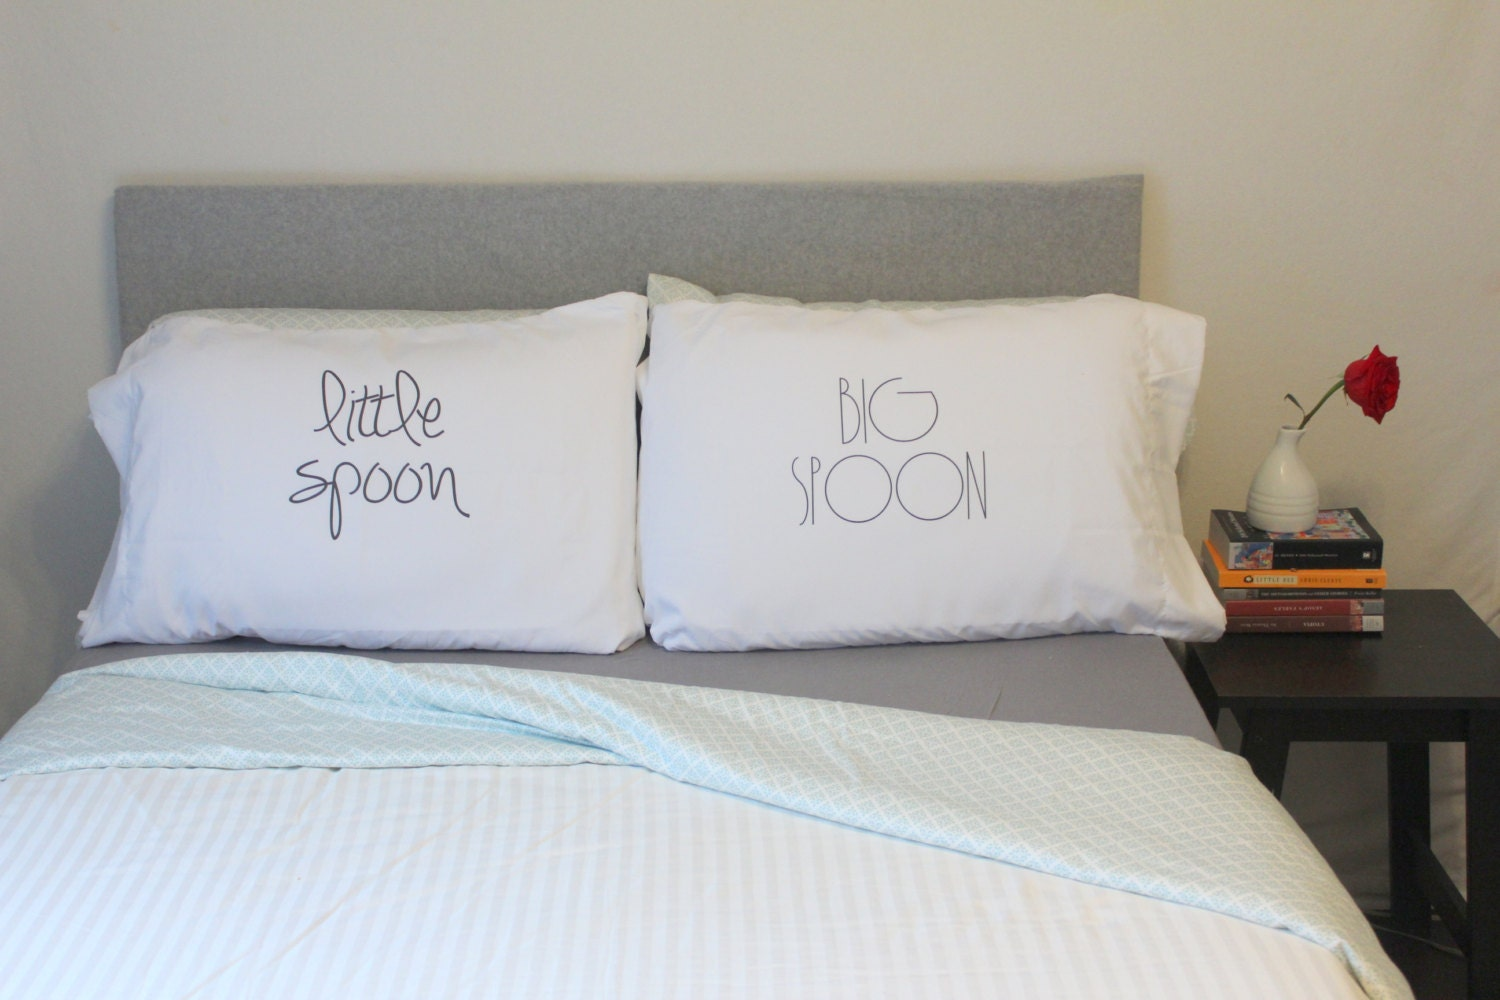 couples bedding - wedding gift big spoon little spoon pillow cases for couples